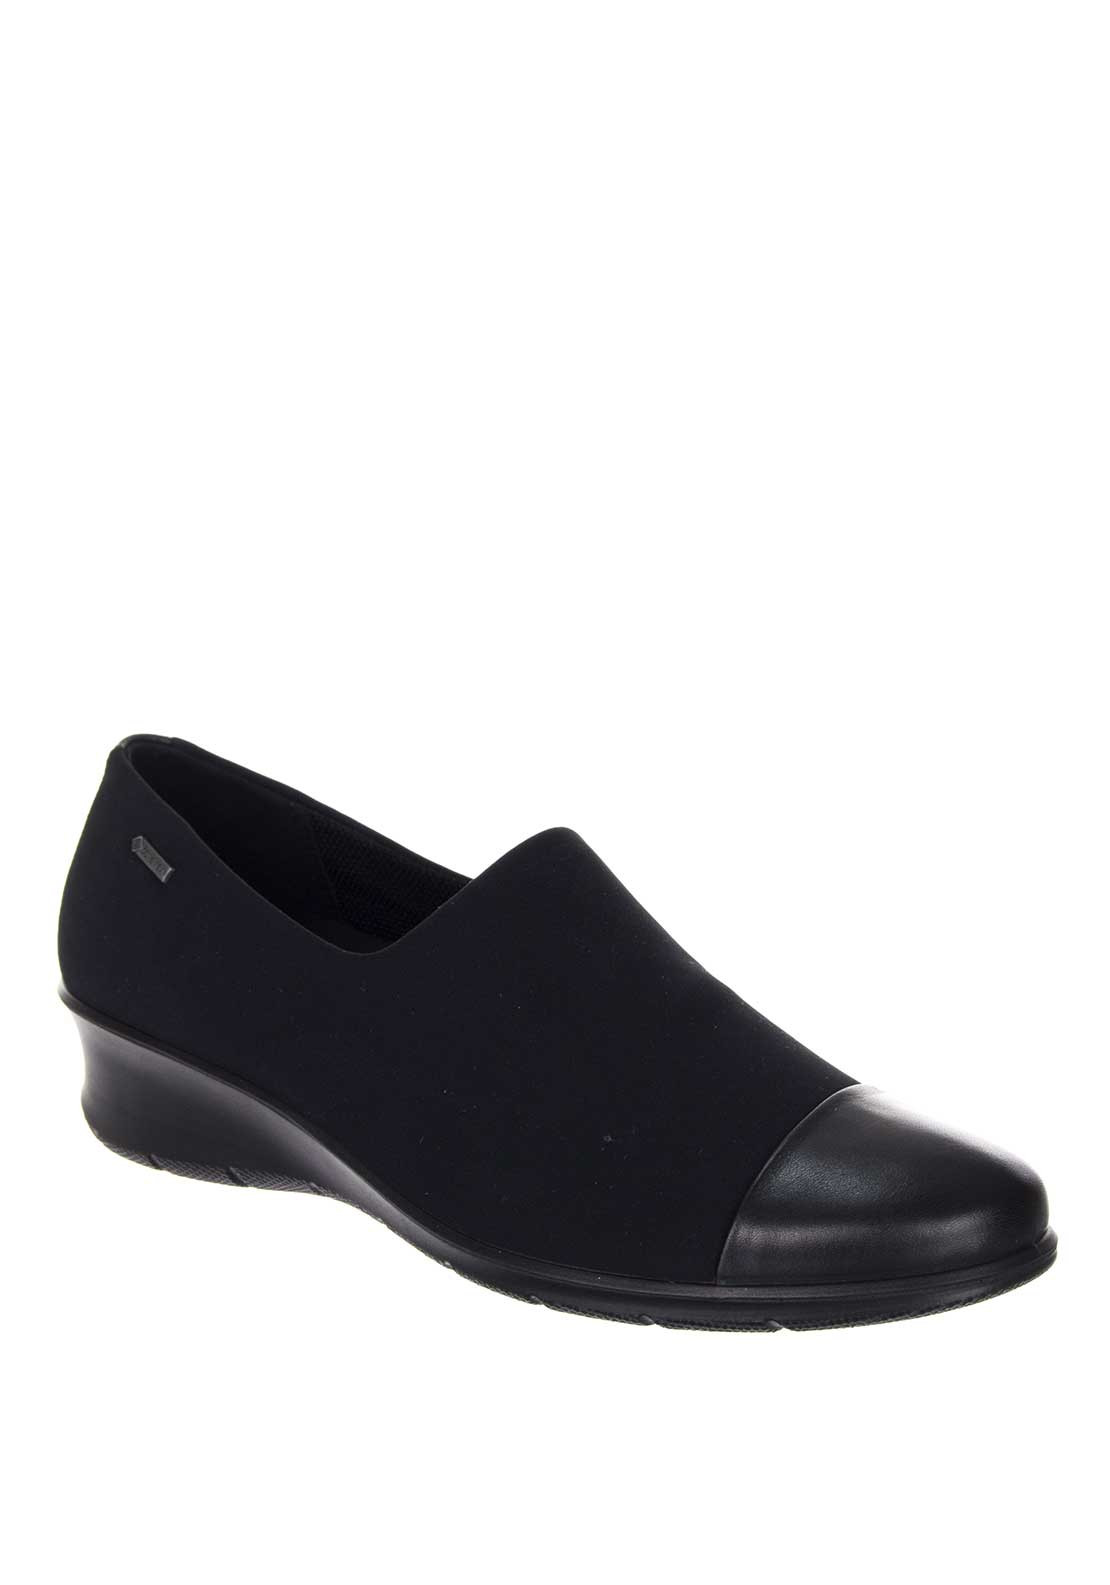 Ecco Womens Touch Leather Low Wedge Shoe, Black